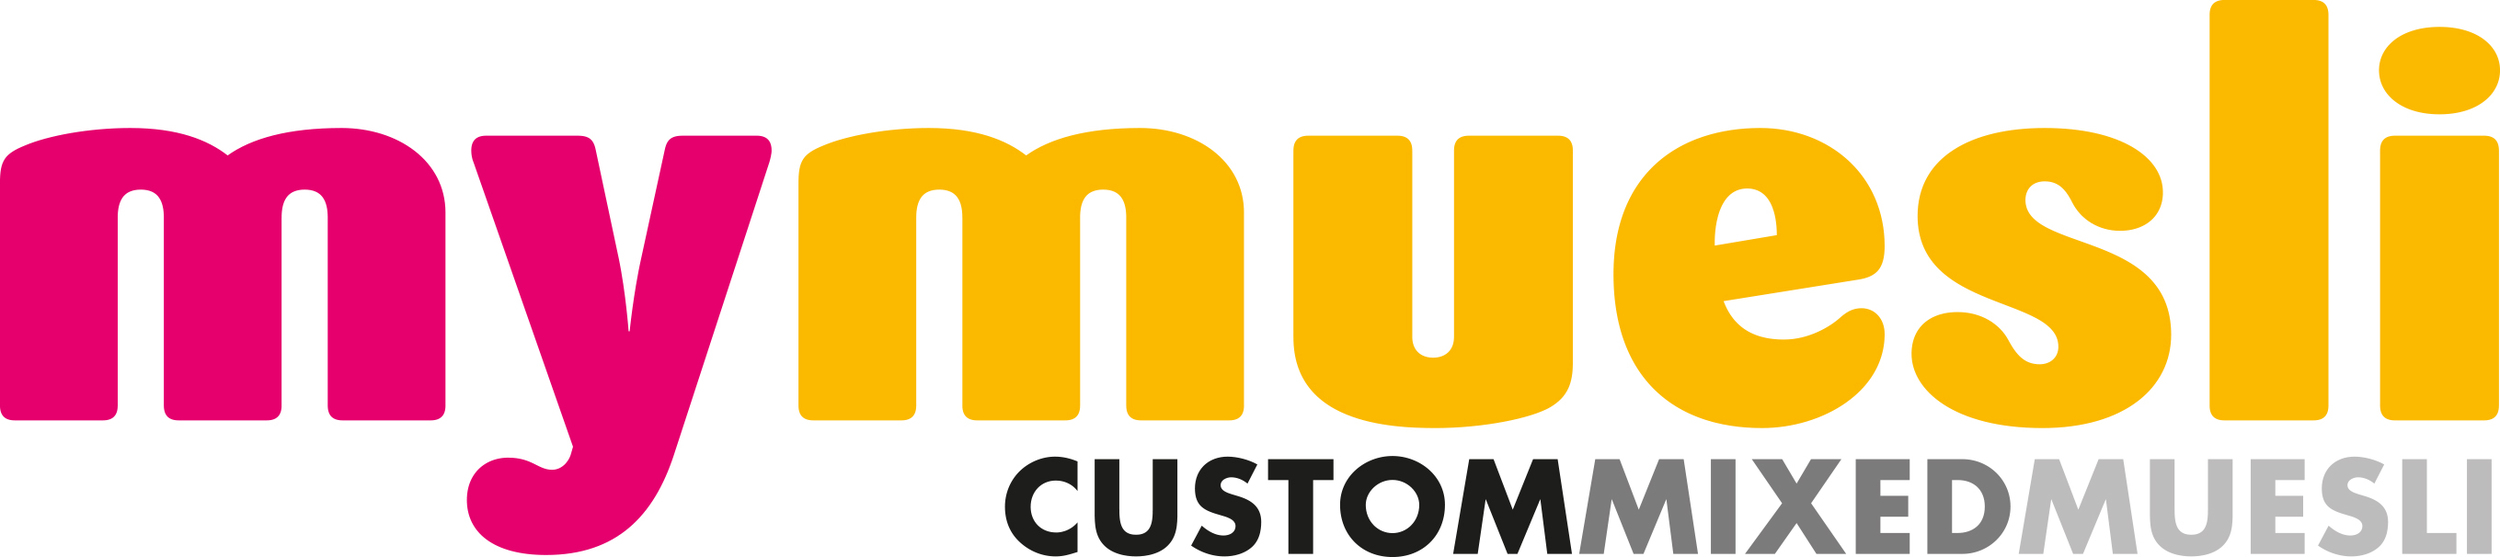 Logo_CMYK_custommixed.jpg